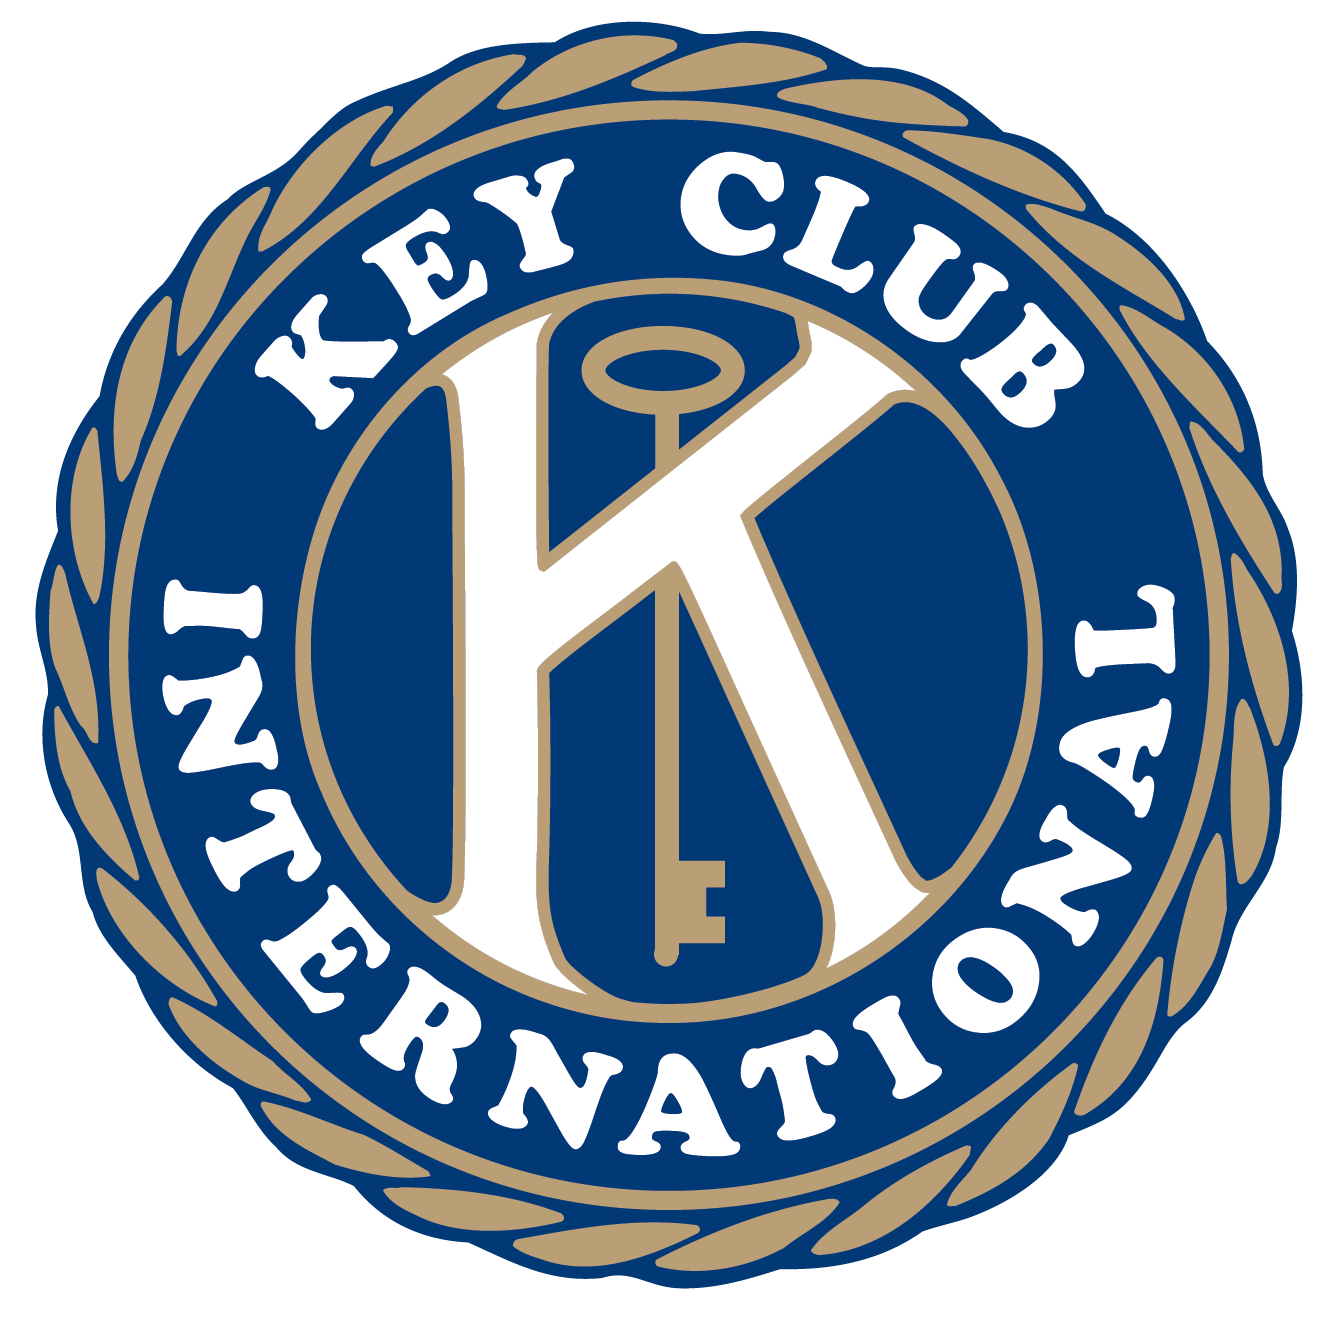 KEY-CLUB-SEAL-Color-1